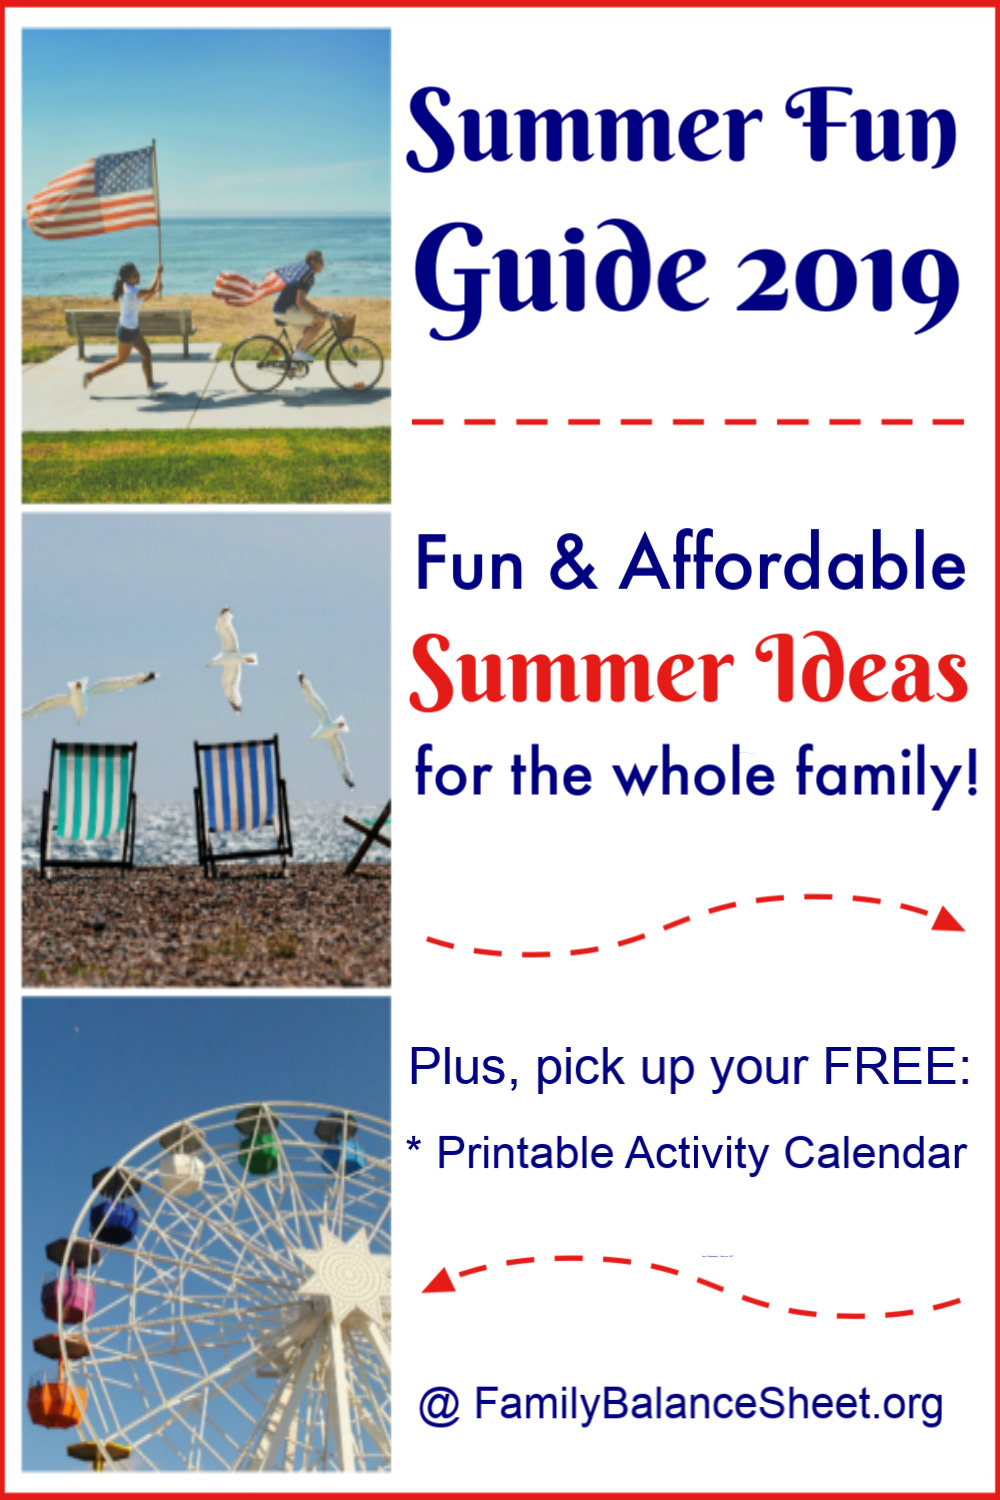 Summer Fun Guide 2019 - Family Balance Sheet